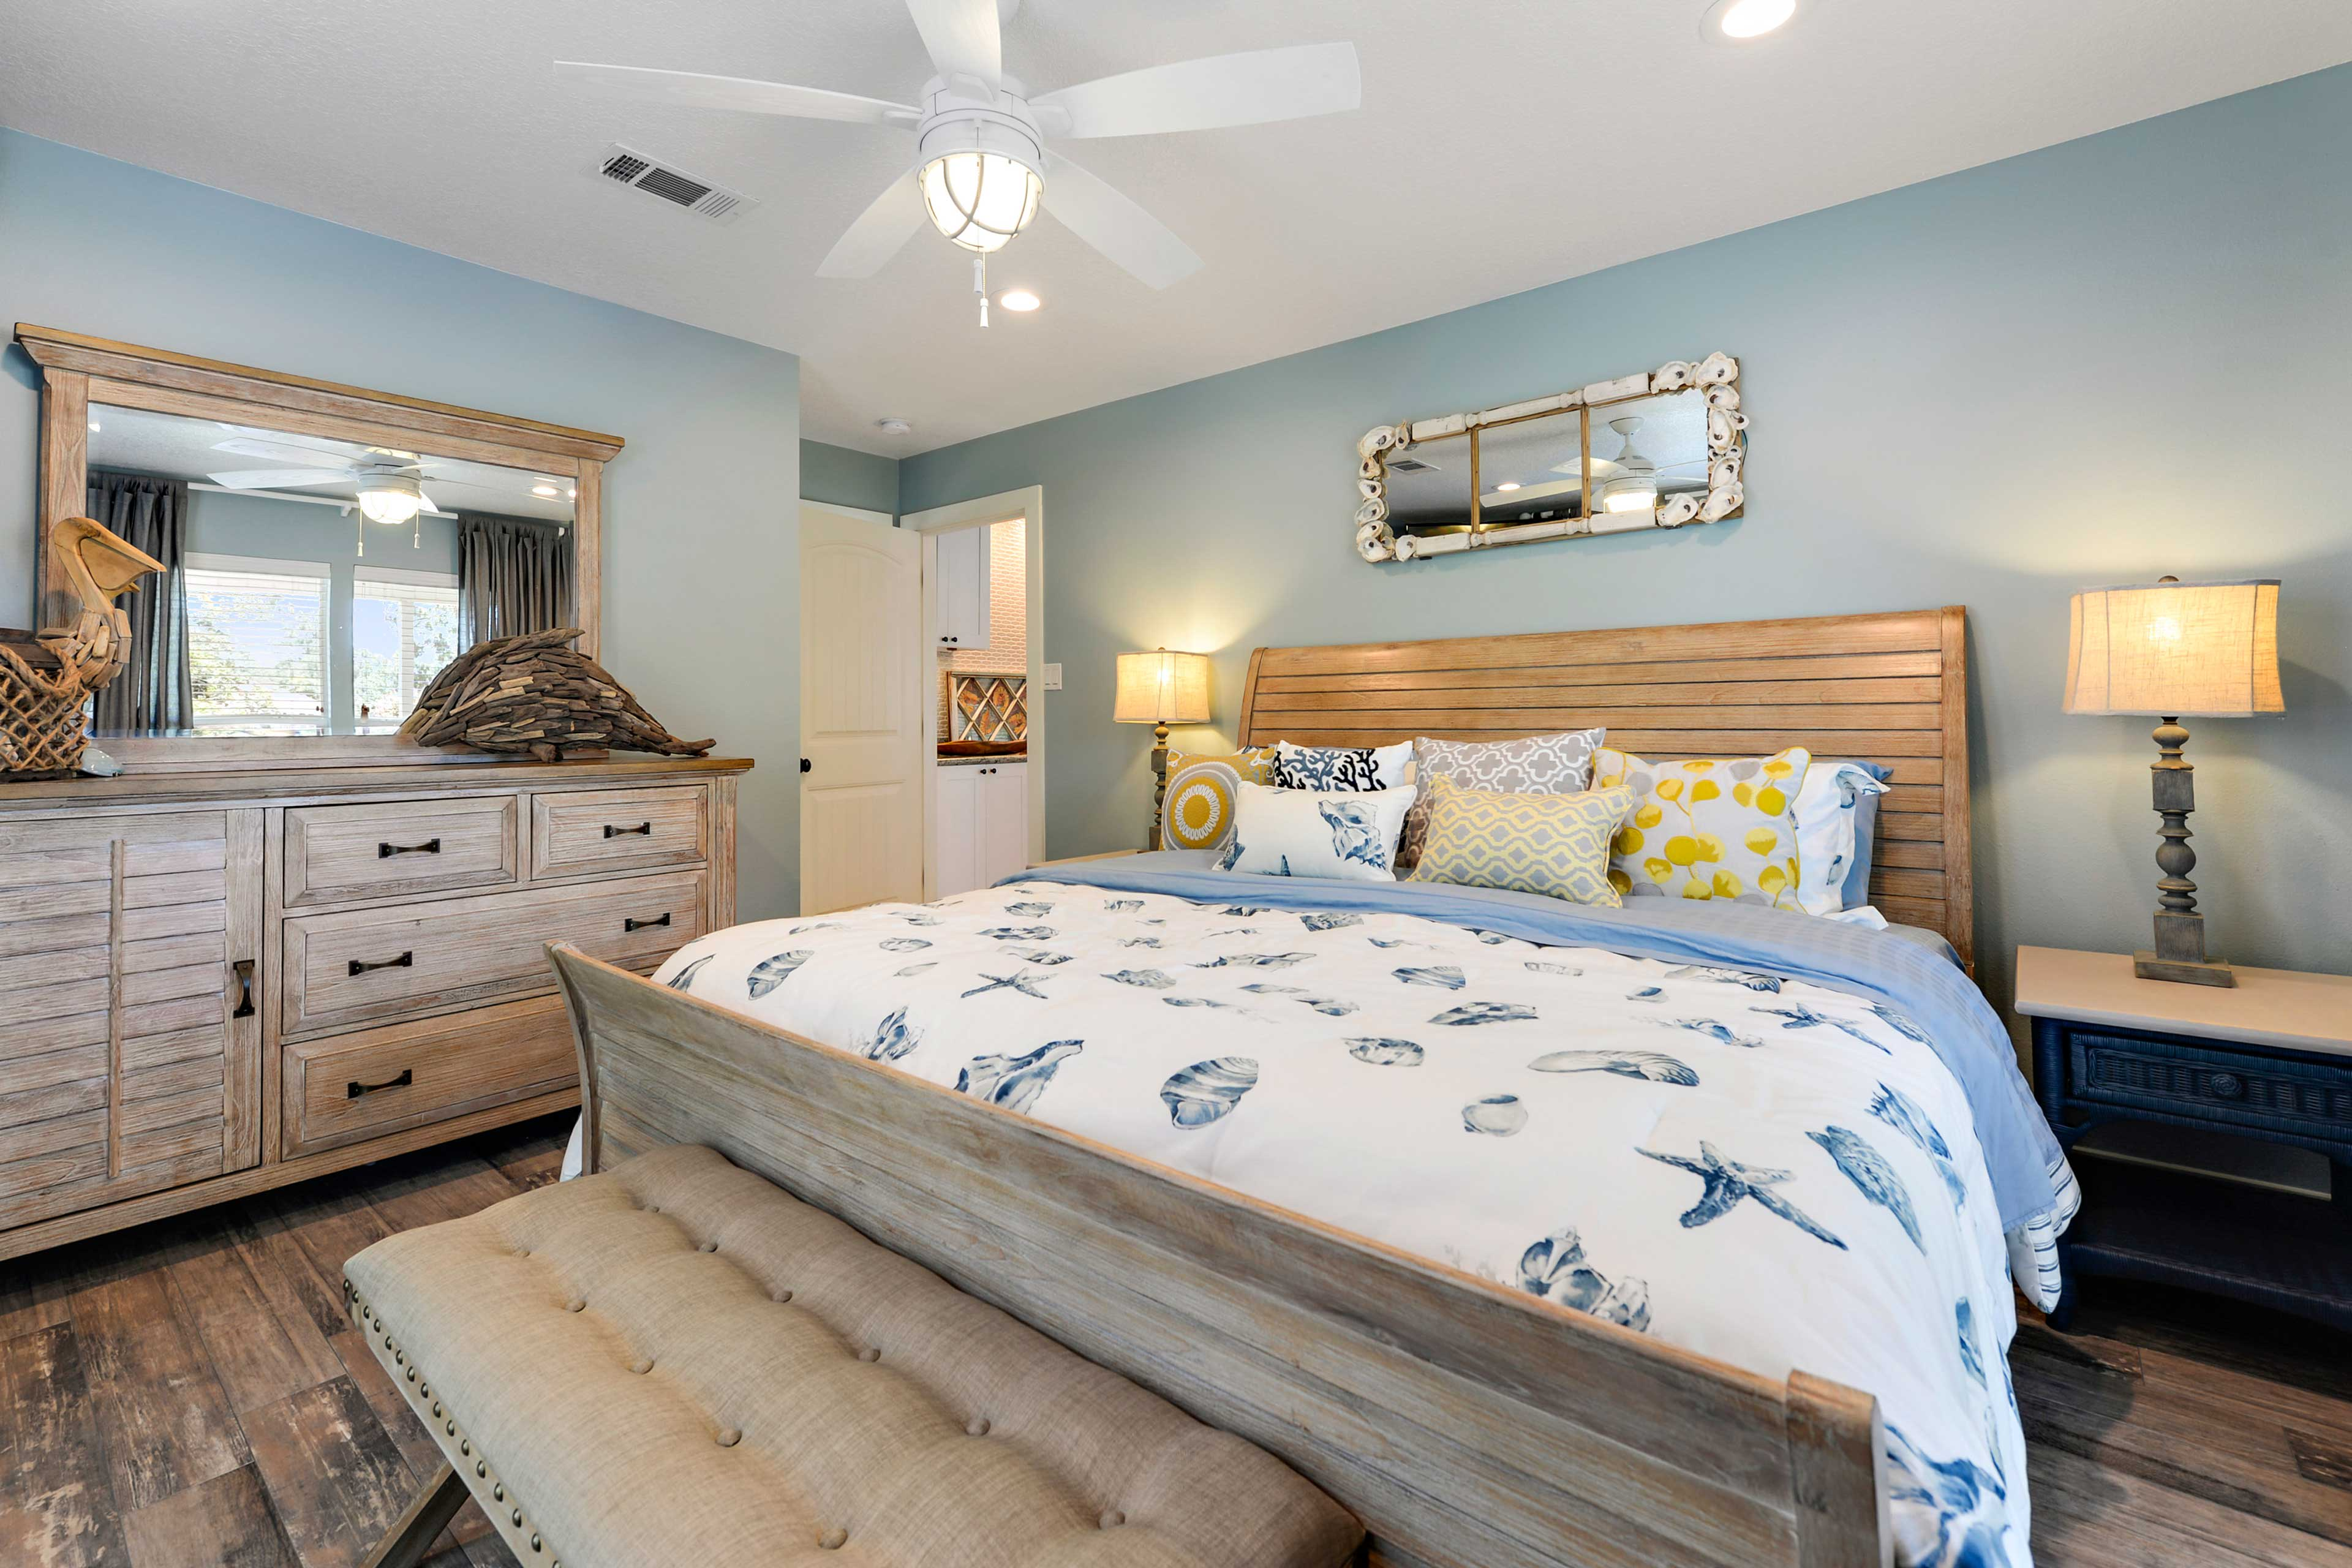 The master bedroom boasts a plus king bed and en-suite bathroom.